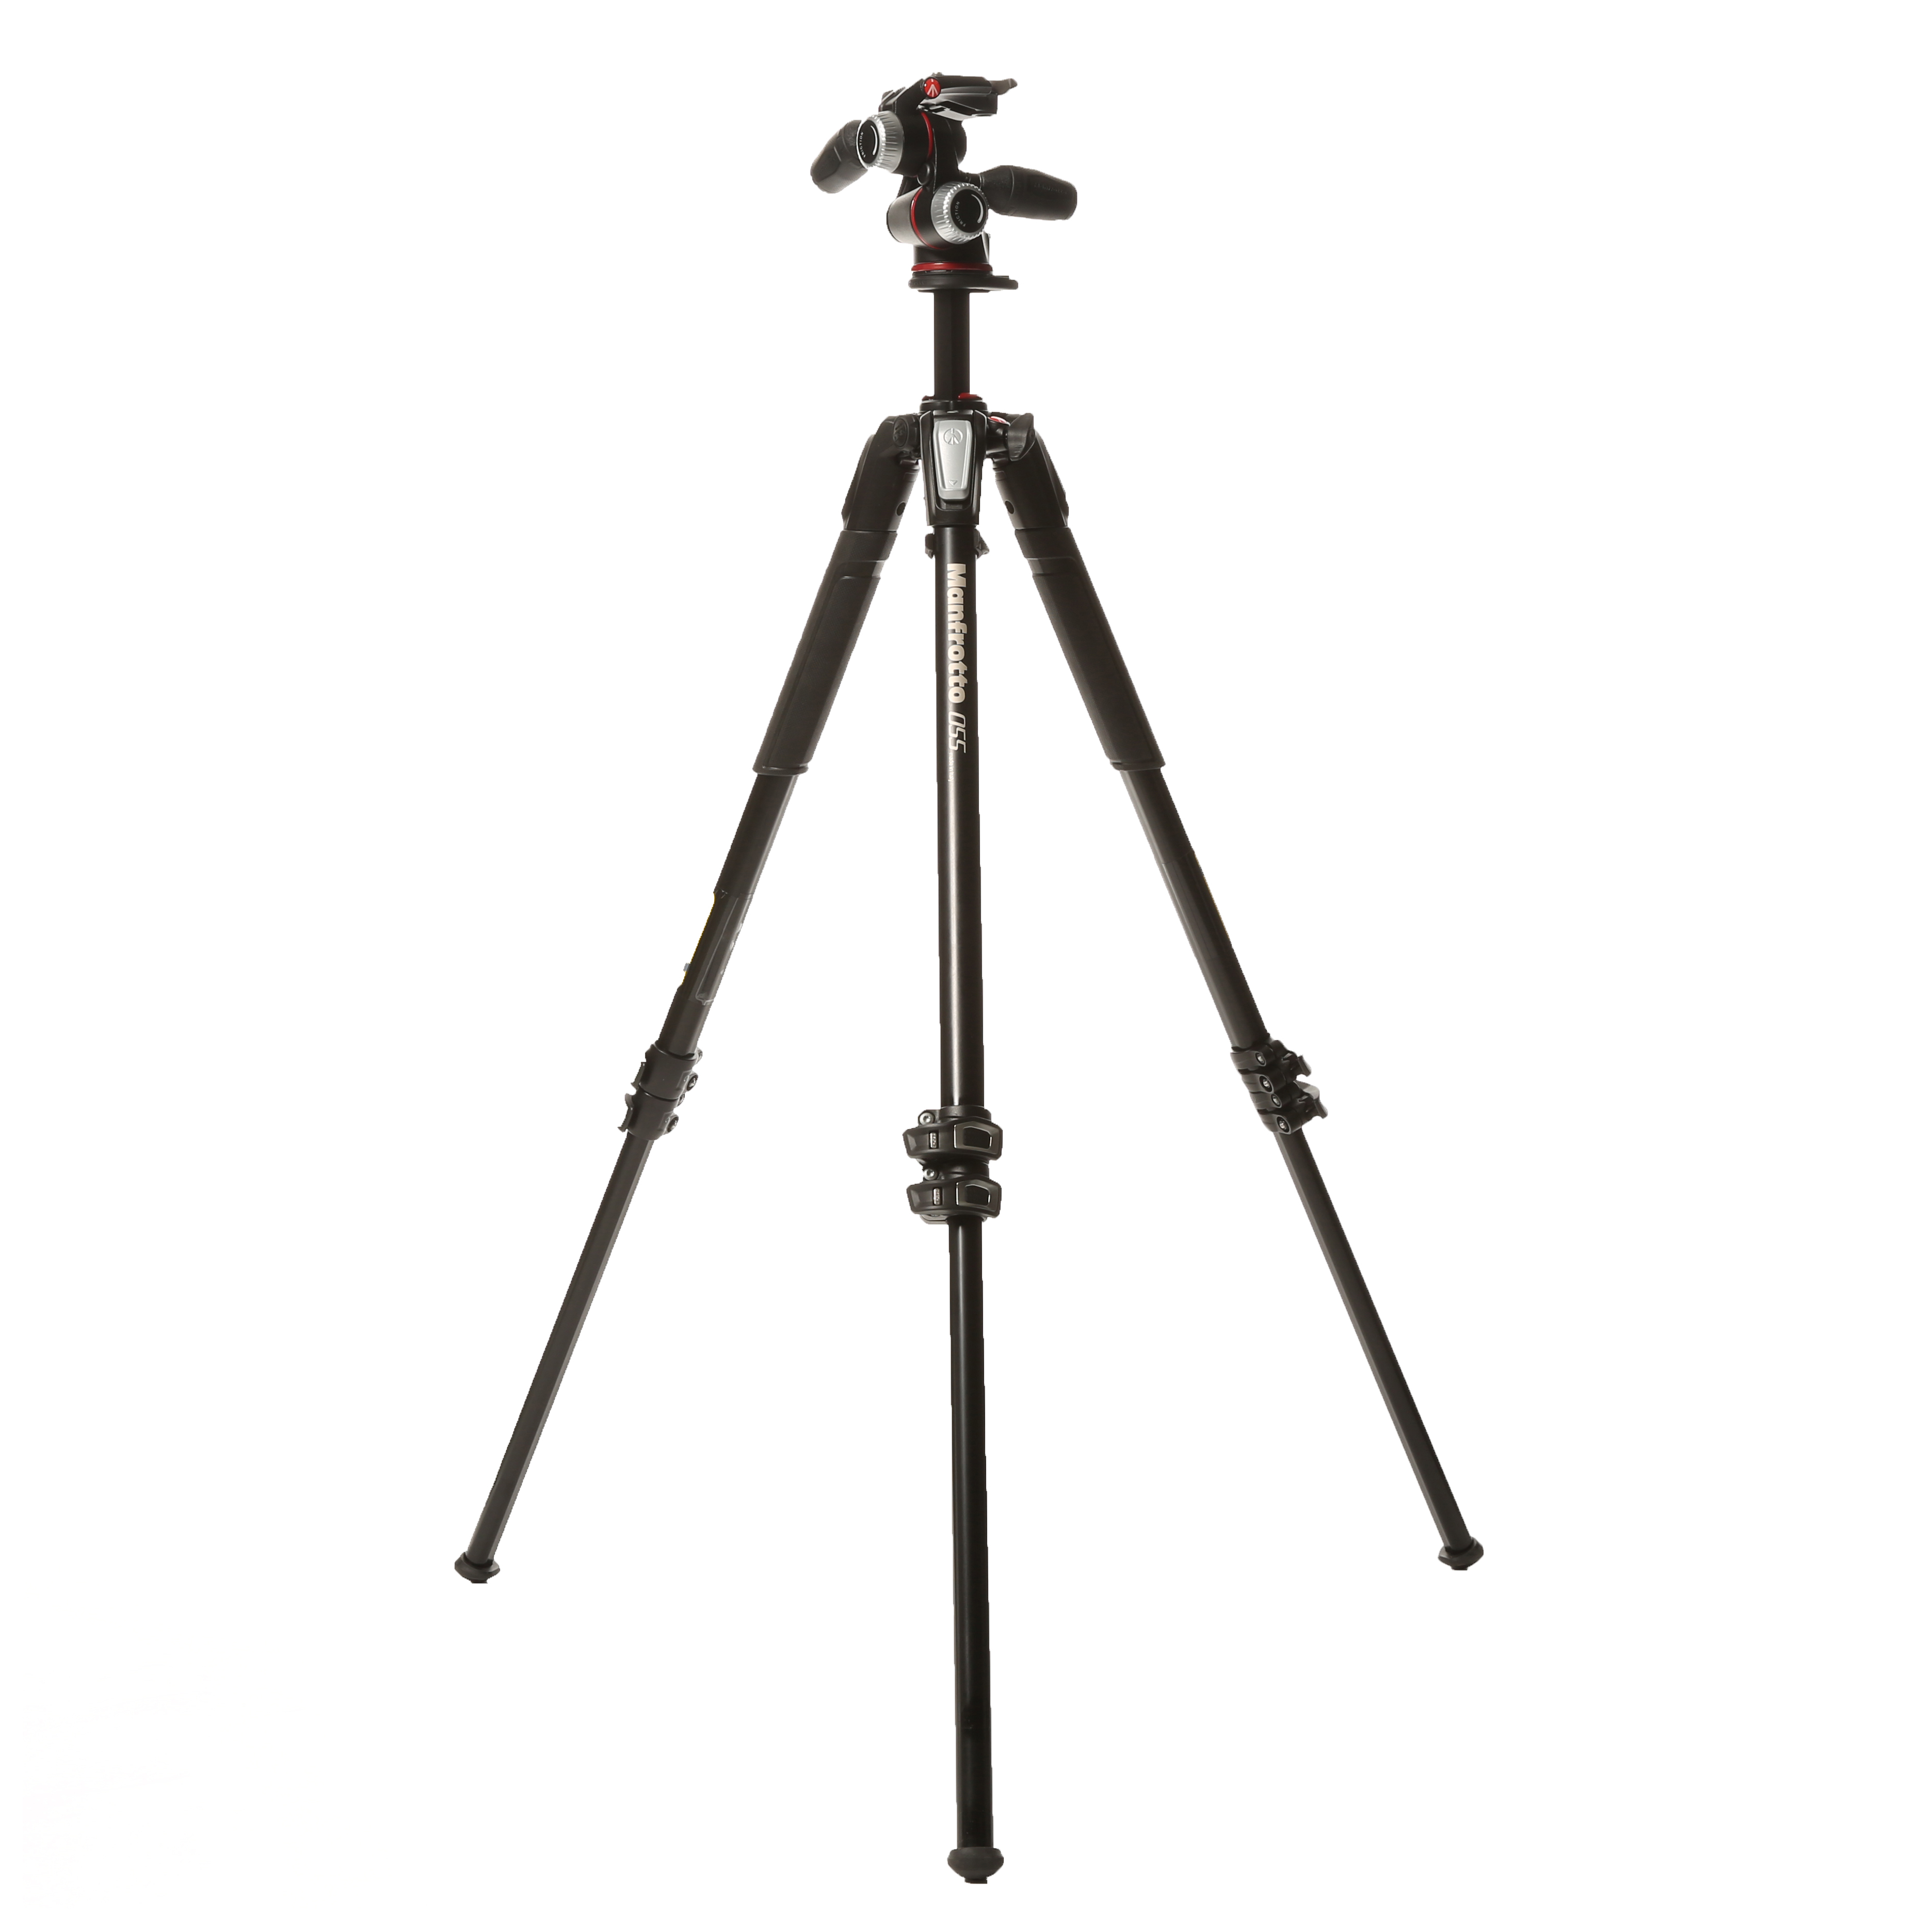 Manfrotto 055 + MHXPro - 3w Head 1.83M